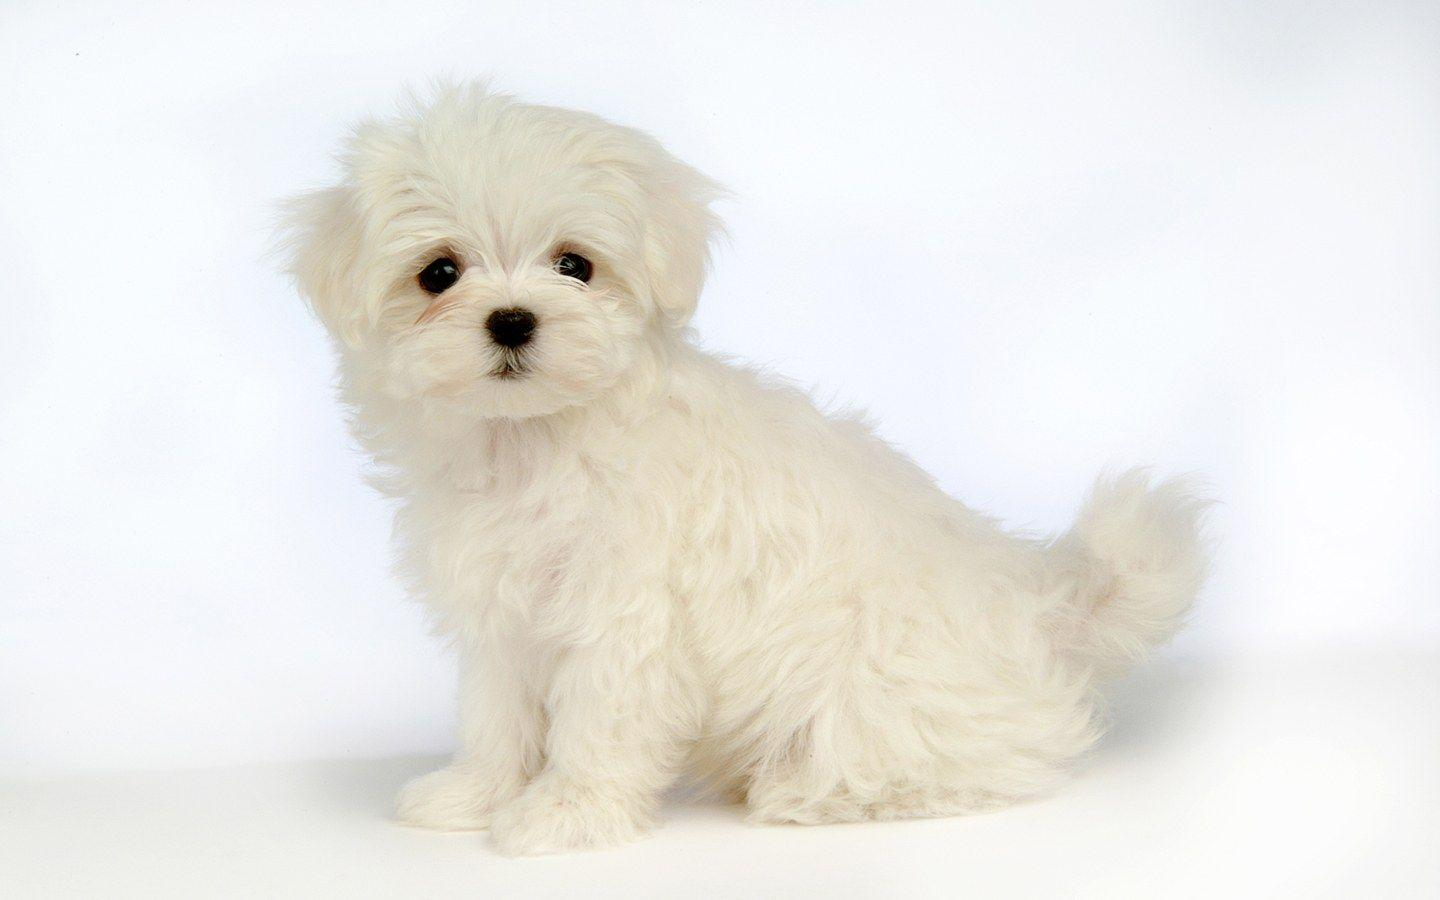 white dogs - Saferbrowser Yahoo Image Search Results | dogs ...